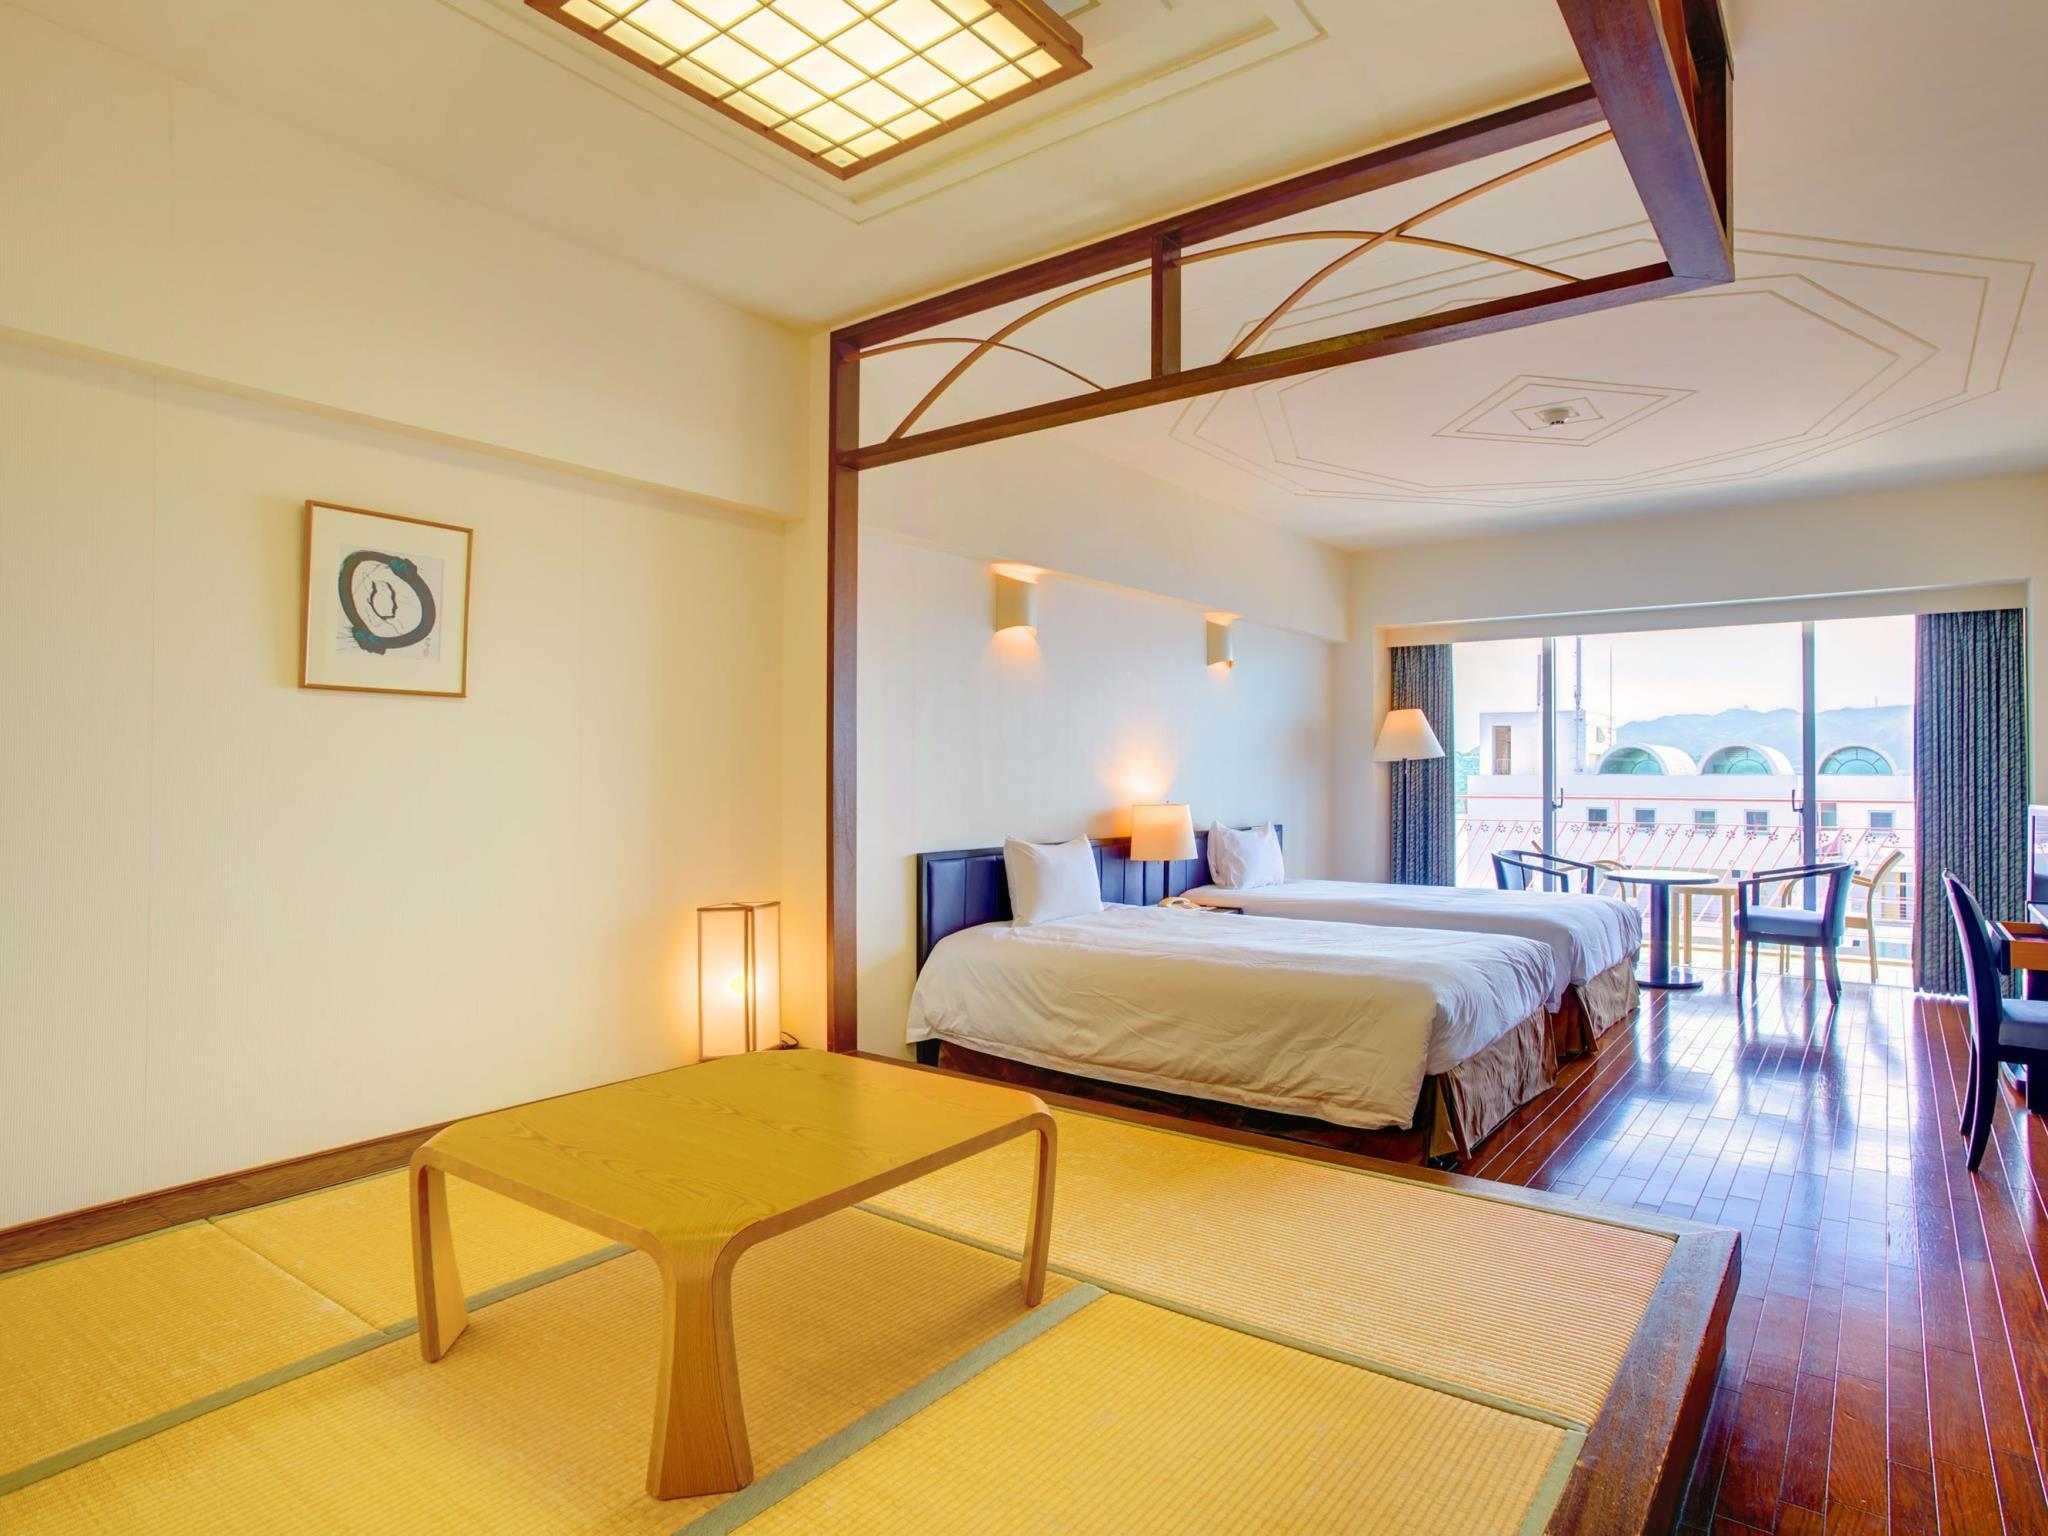 스탠다드룸 (4인, 다다미 공간, 금연) (Standard Room with Tatami Area for 4 People - Non-Smoking)